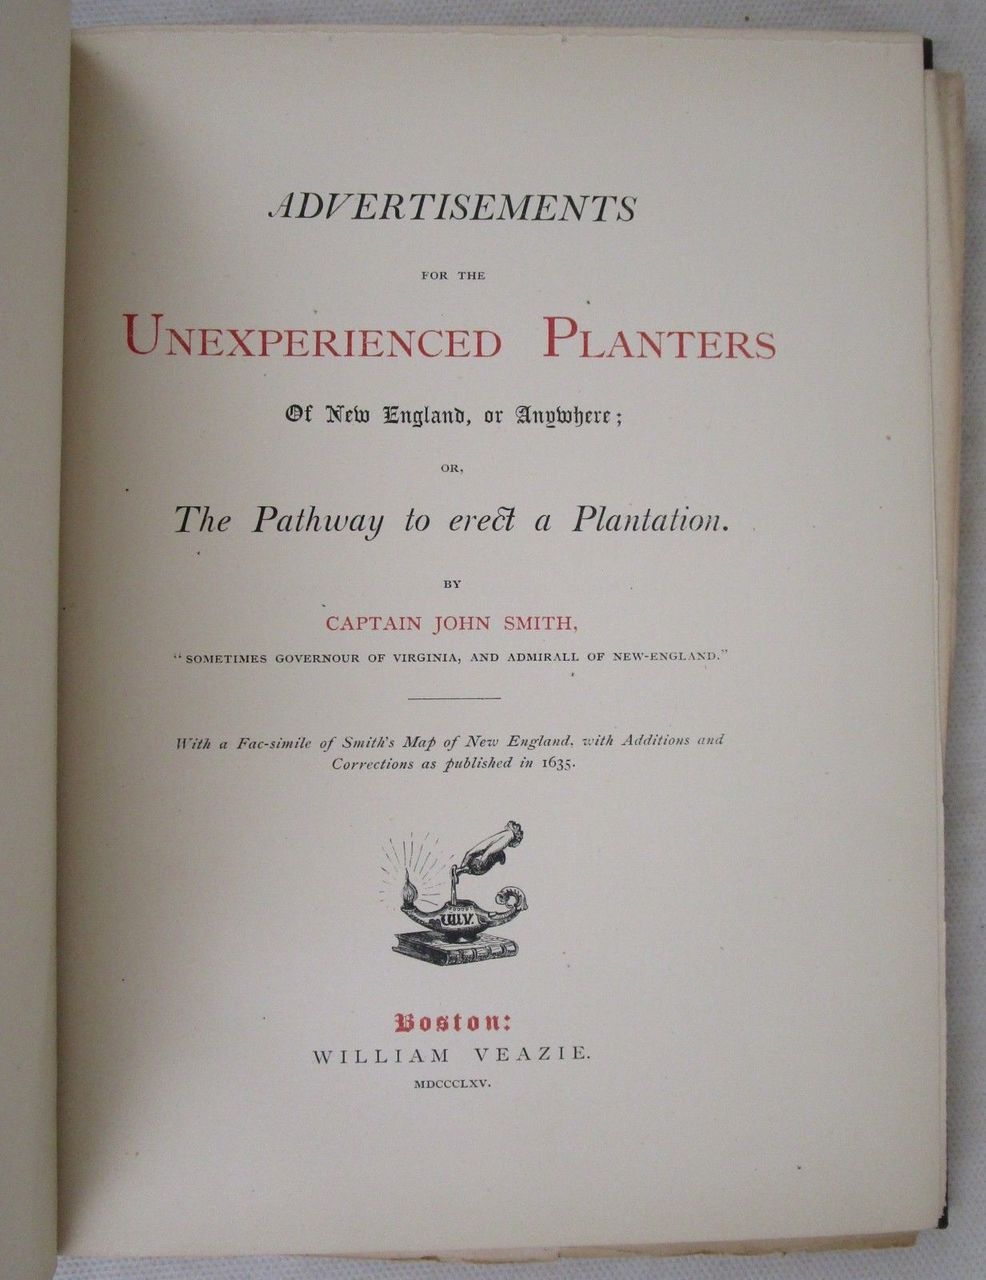 ADVERTISEMENTS FOR THE UNEXPERIENCED PLANTERS, John Smith - 1865 1/250 Reprint